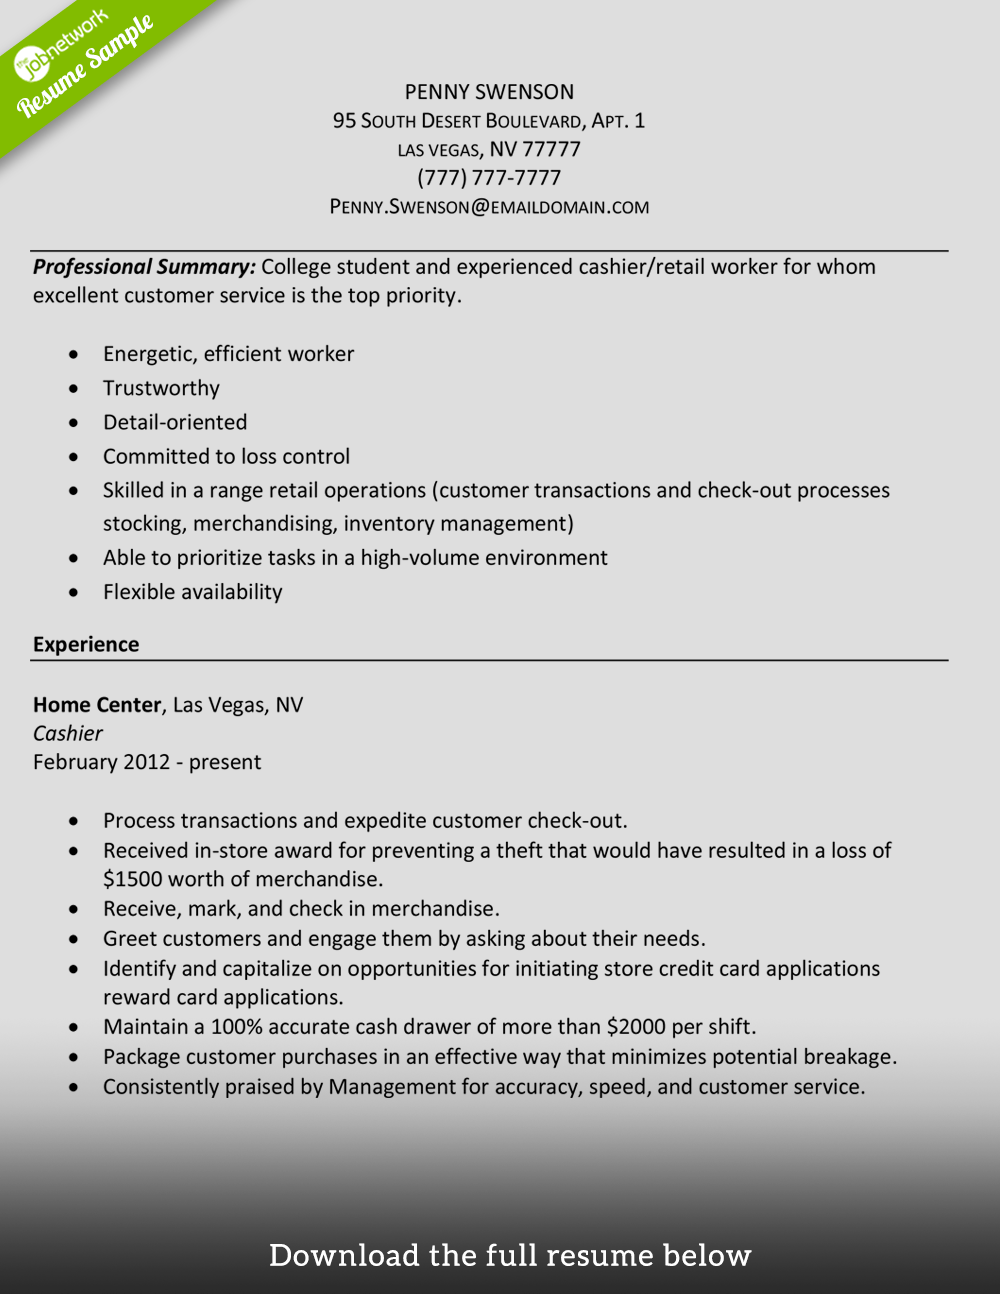 resume no job experience reddit